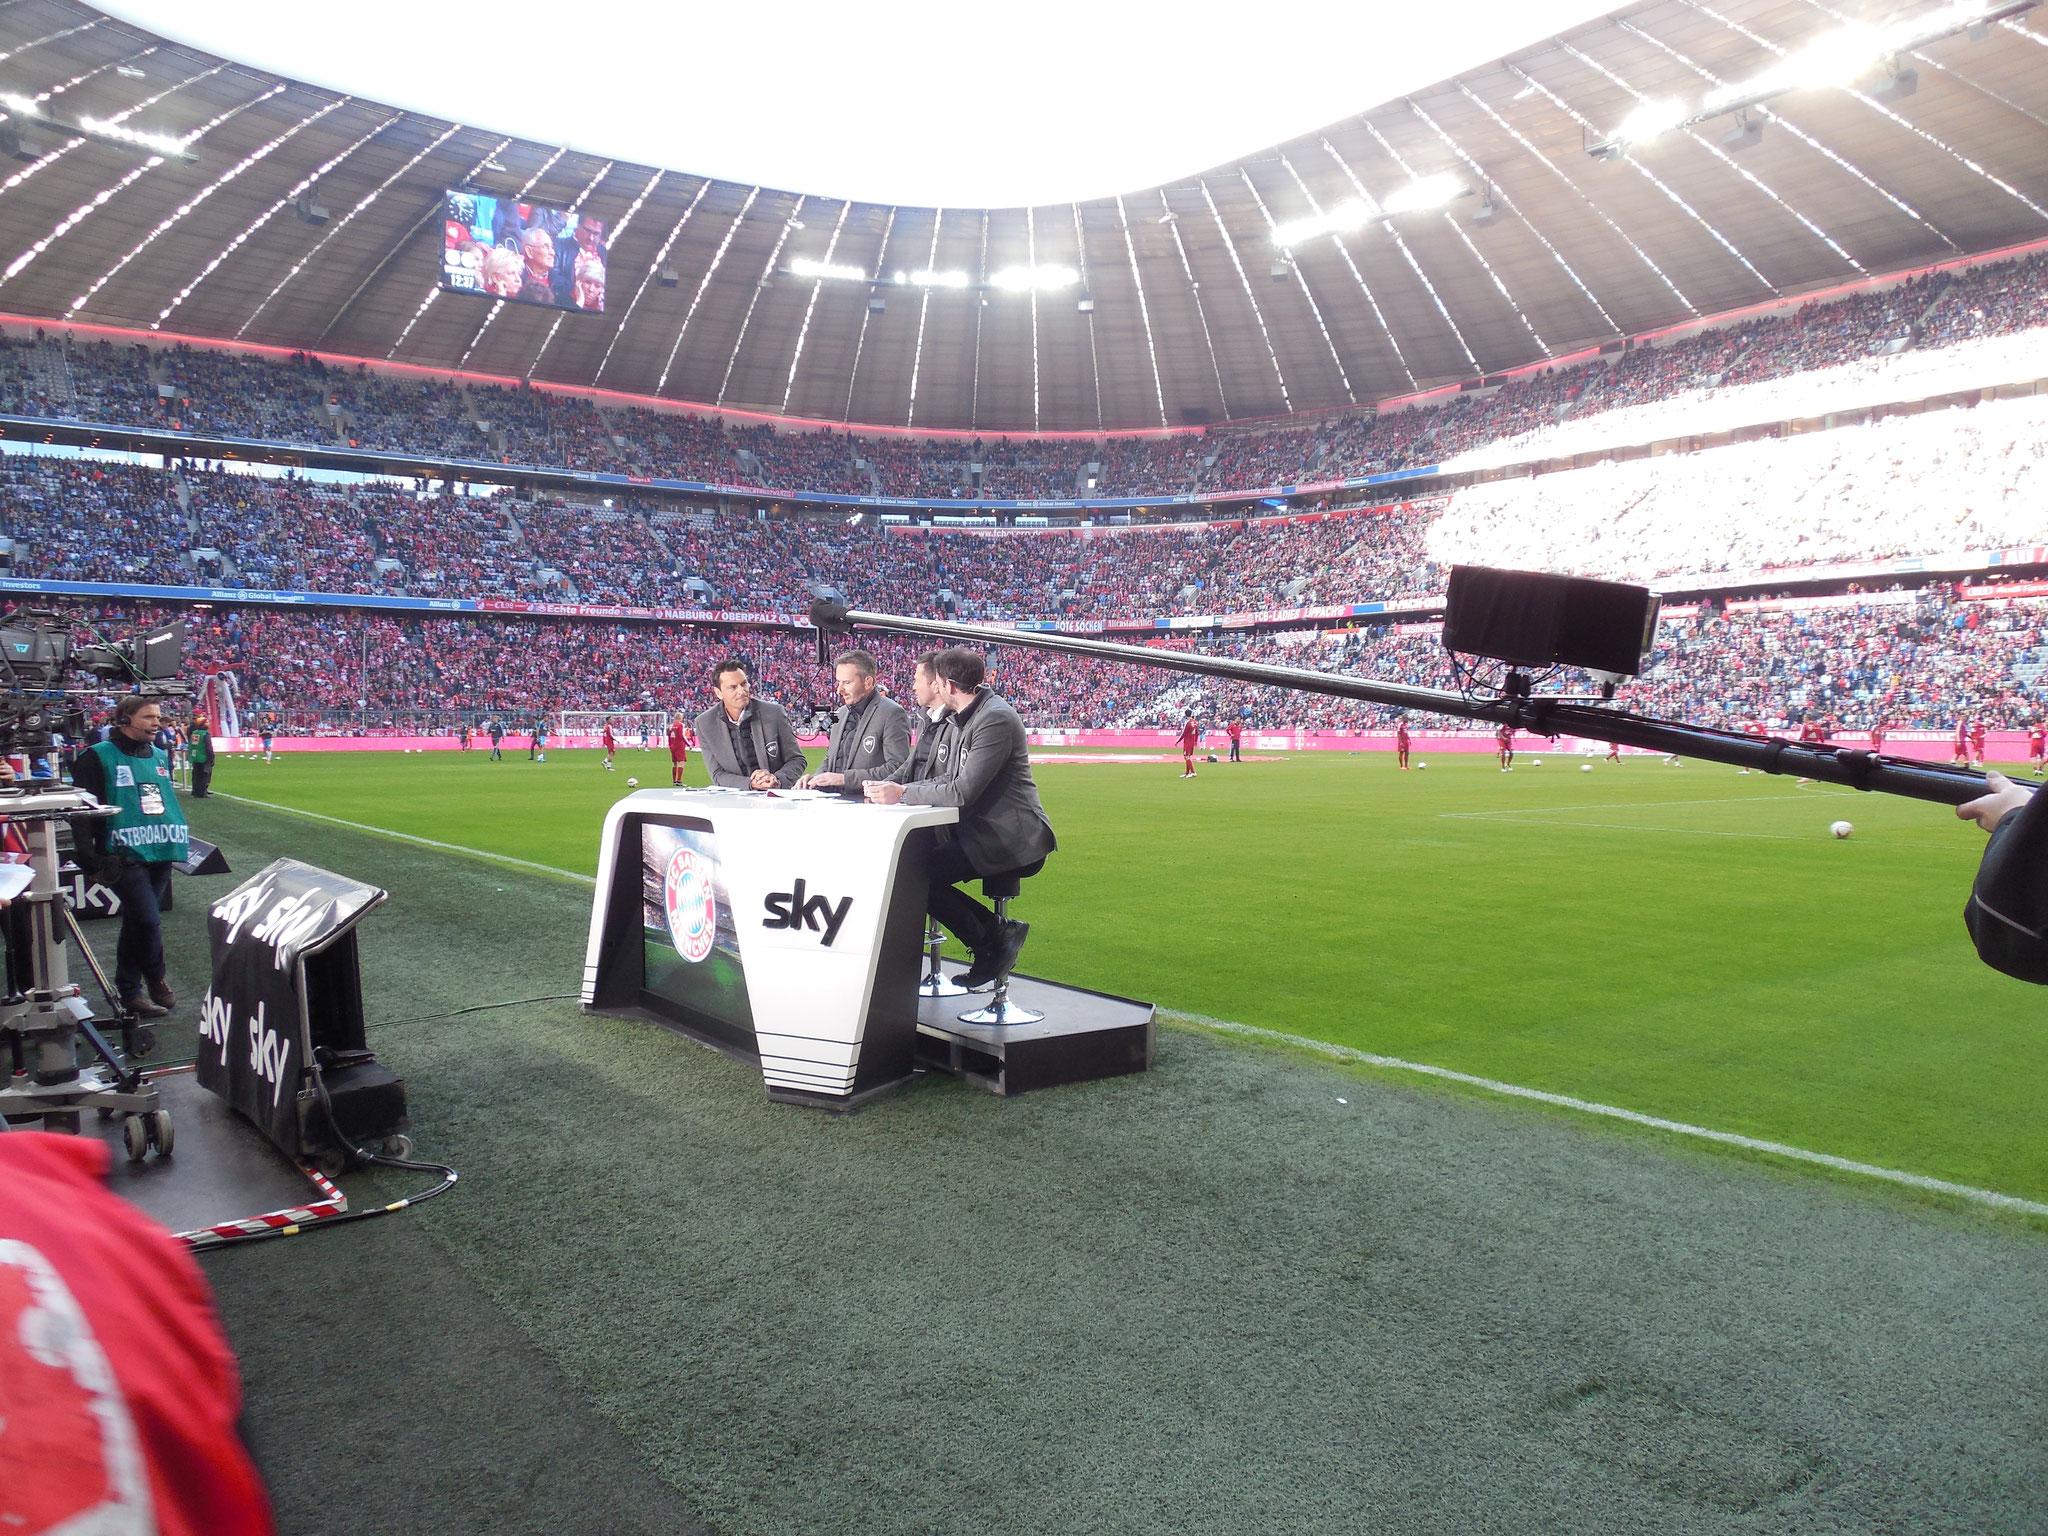 Allianz Arena FC Bayern LED Screen Sky Topspiel Tisch